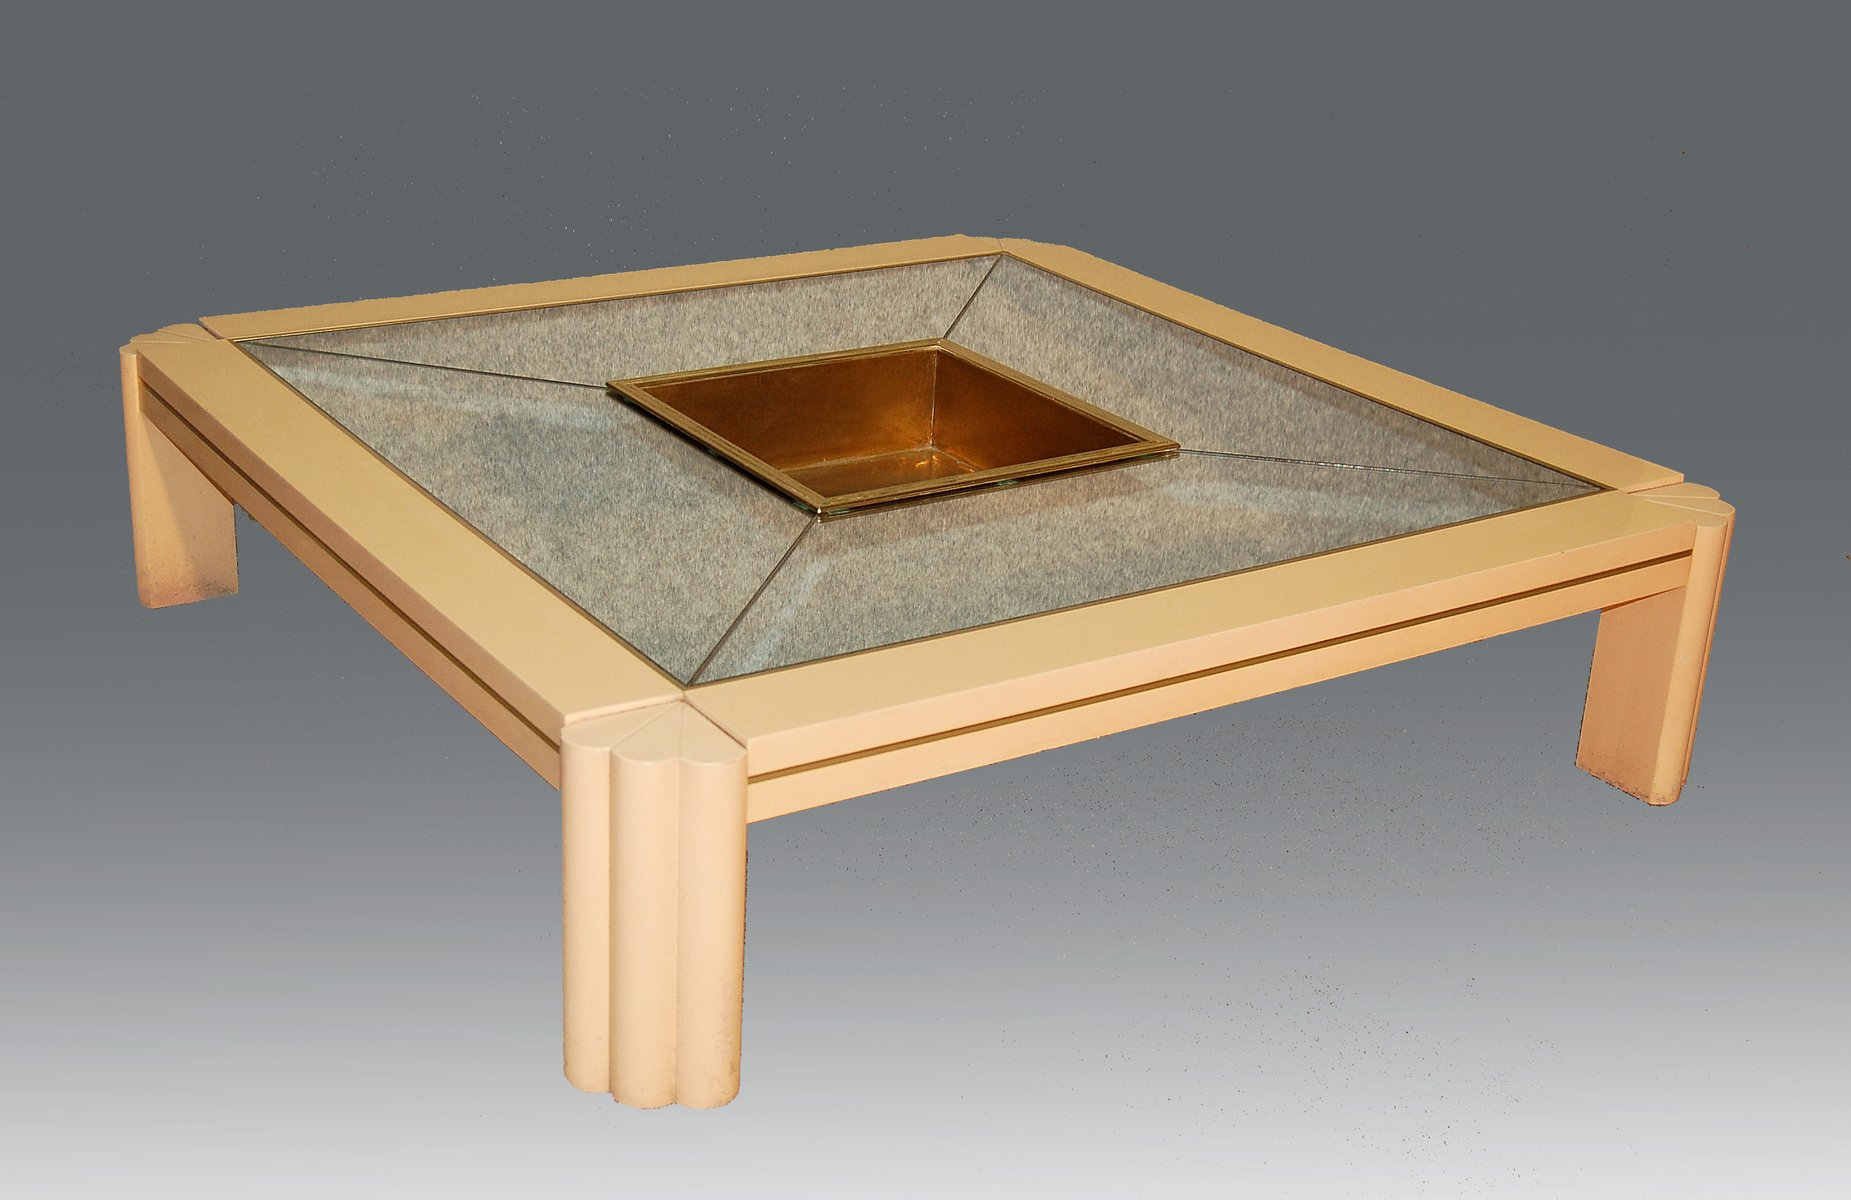 Vintage Coffee Table by Alain Delon for Maison Jansen for sale at